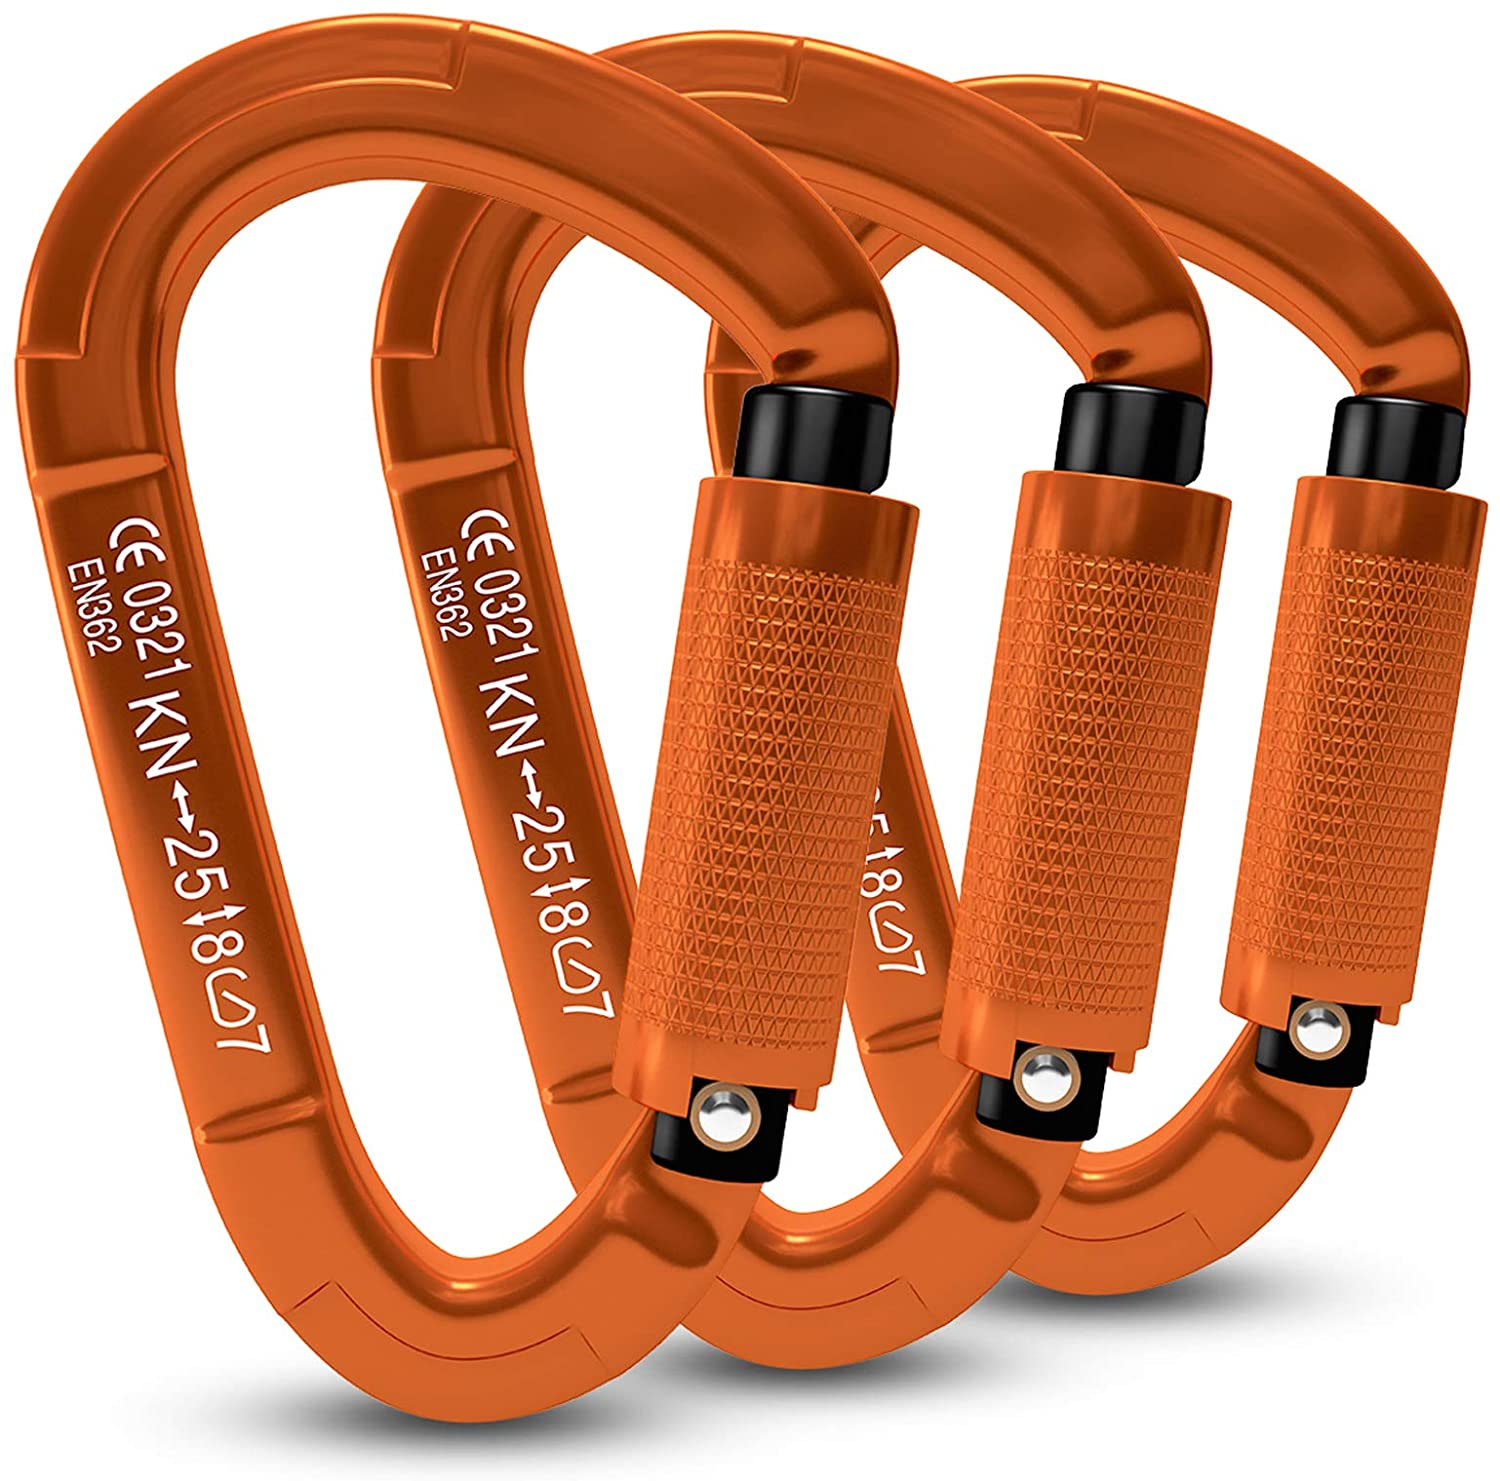 FVW 3 Pieces Heavy Duty Tucson Mall Max 81% OFF Climbing R Auto 25KN Carabiners Locking